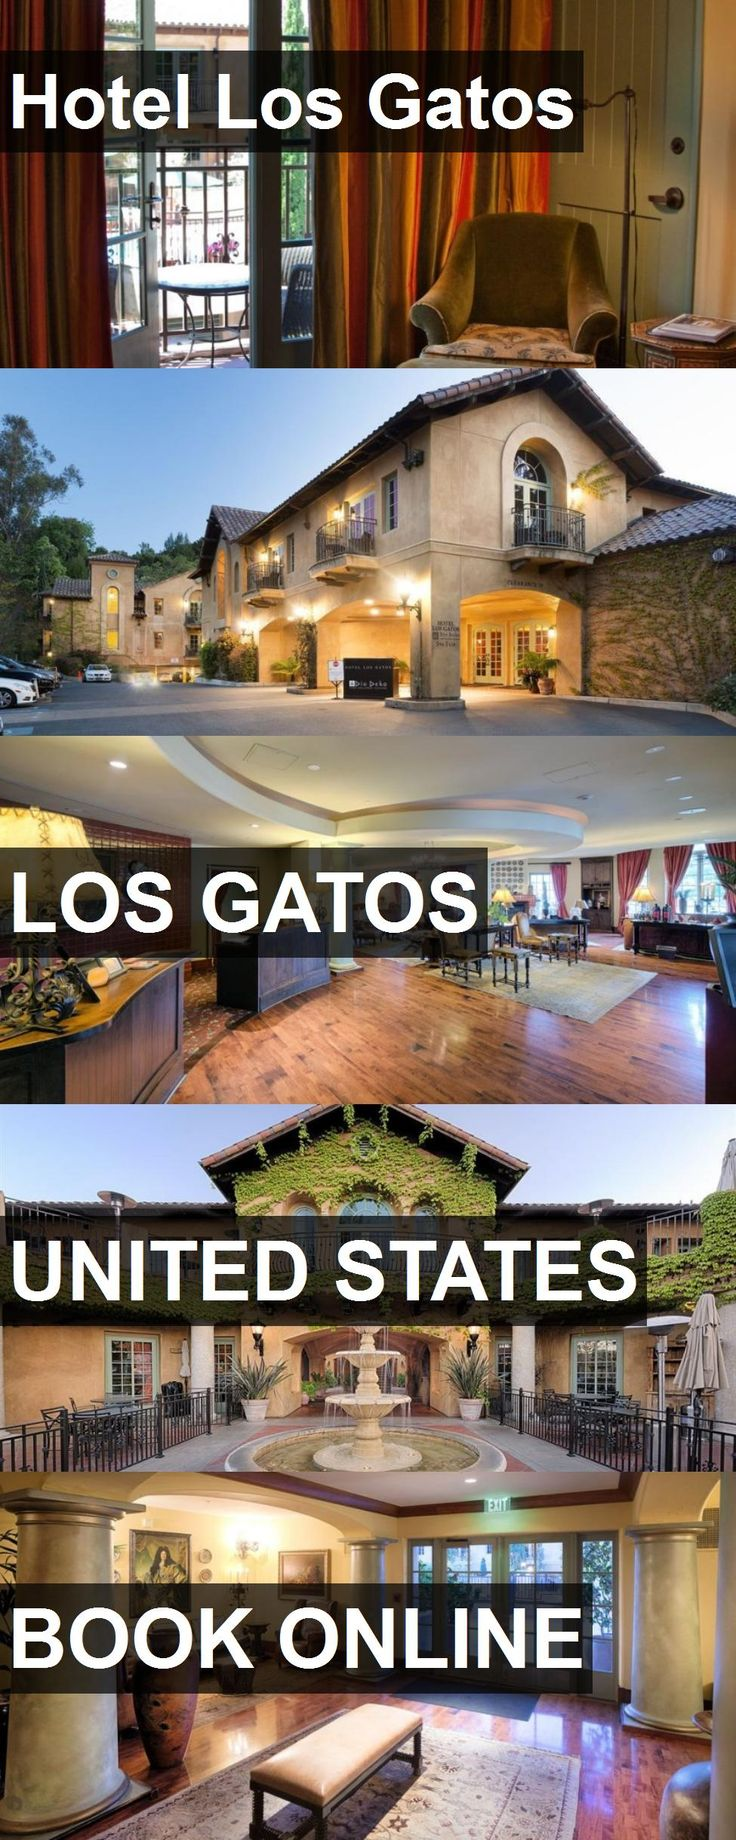 Hotel Los Gatos in Los Gatos, United States. For more information, photos, reviews and best prices please follow the link. #UnitedStates #LosGatos #travel #vacation #hotel